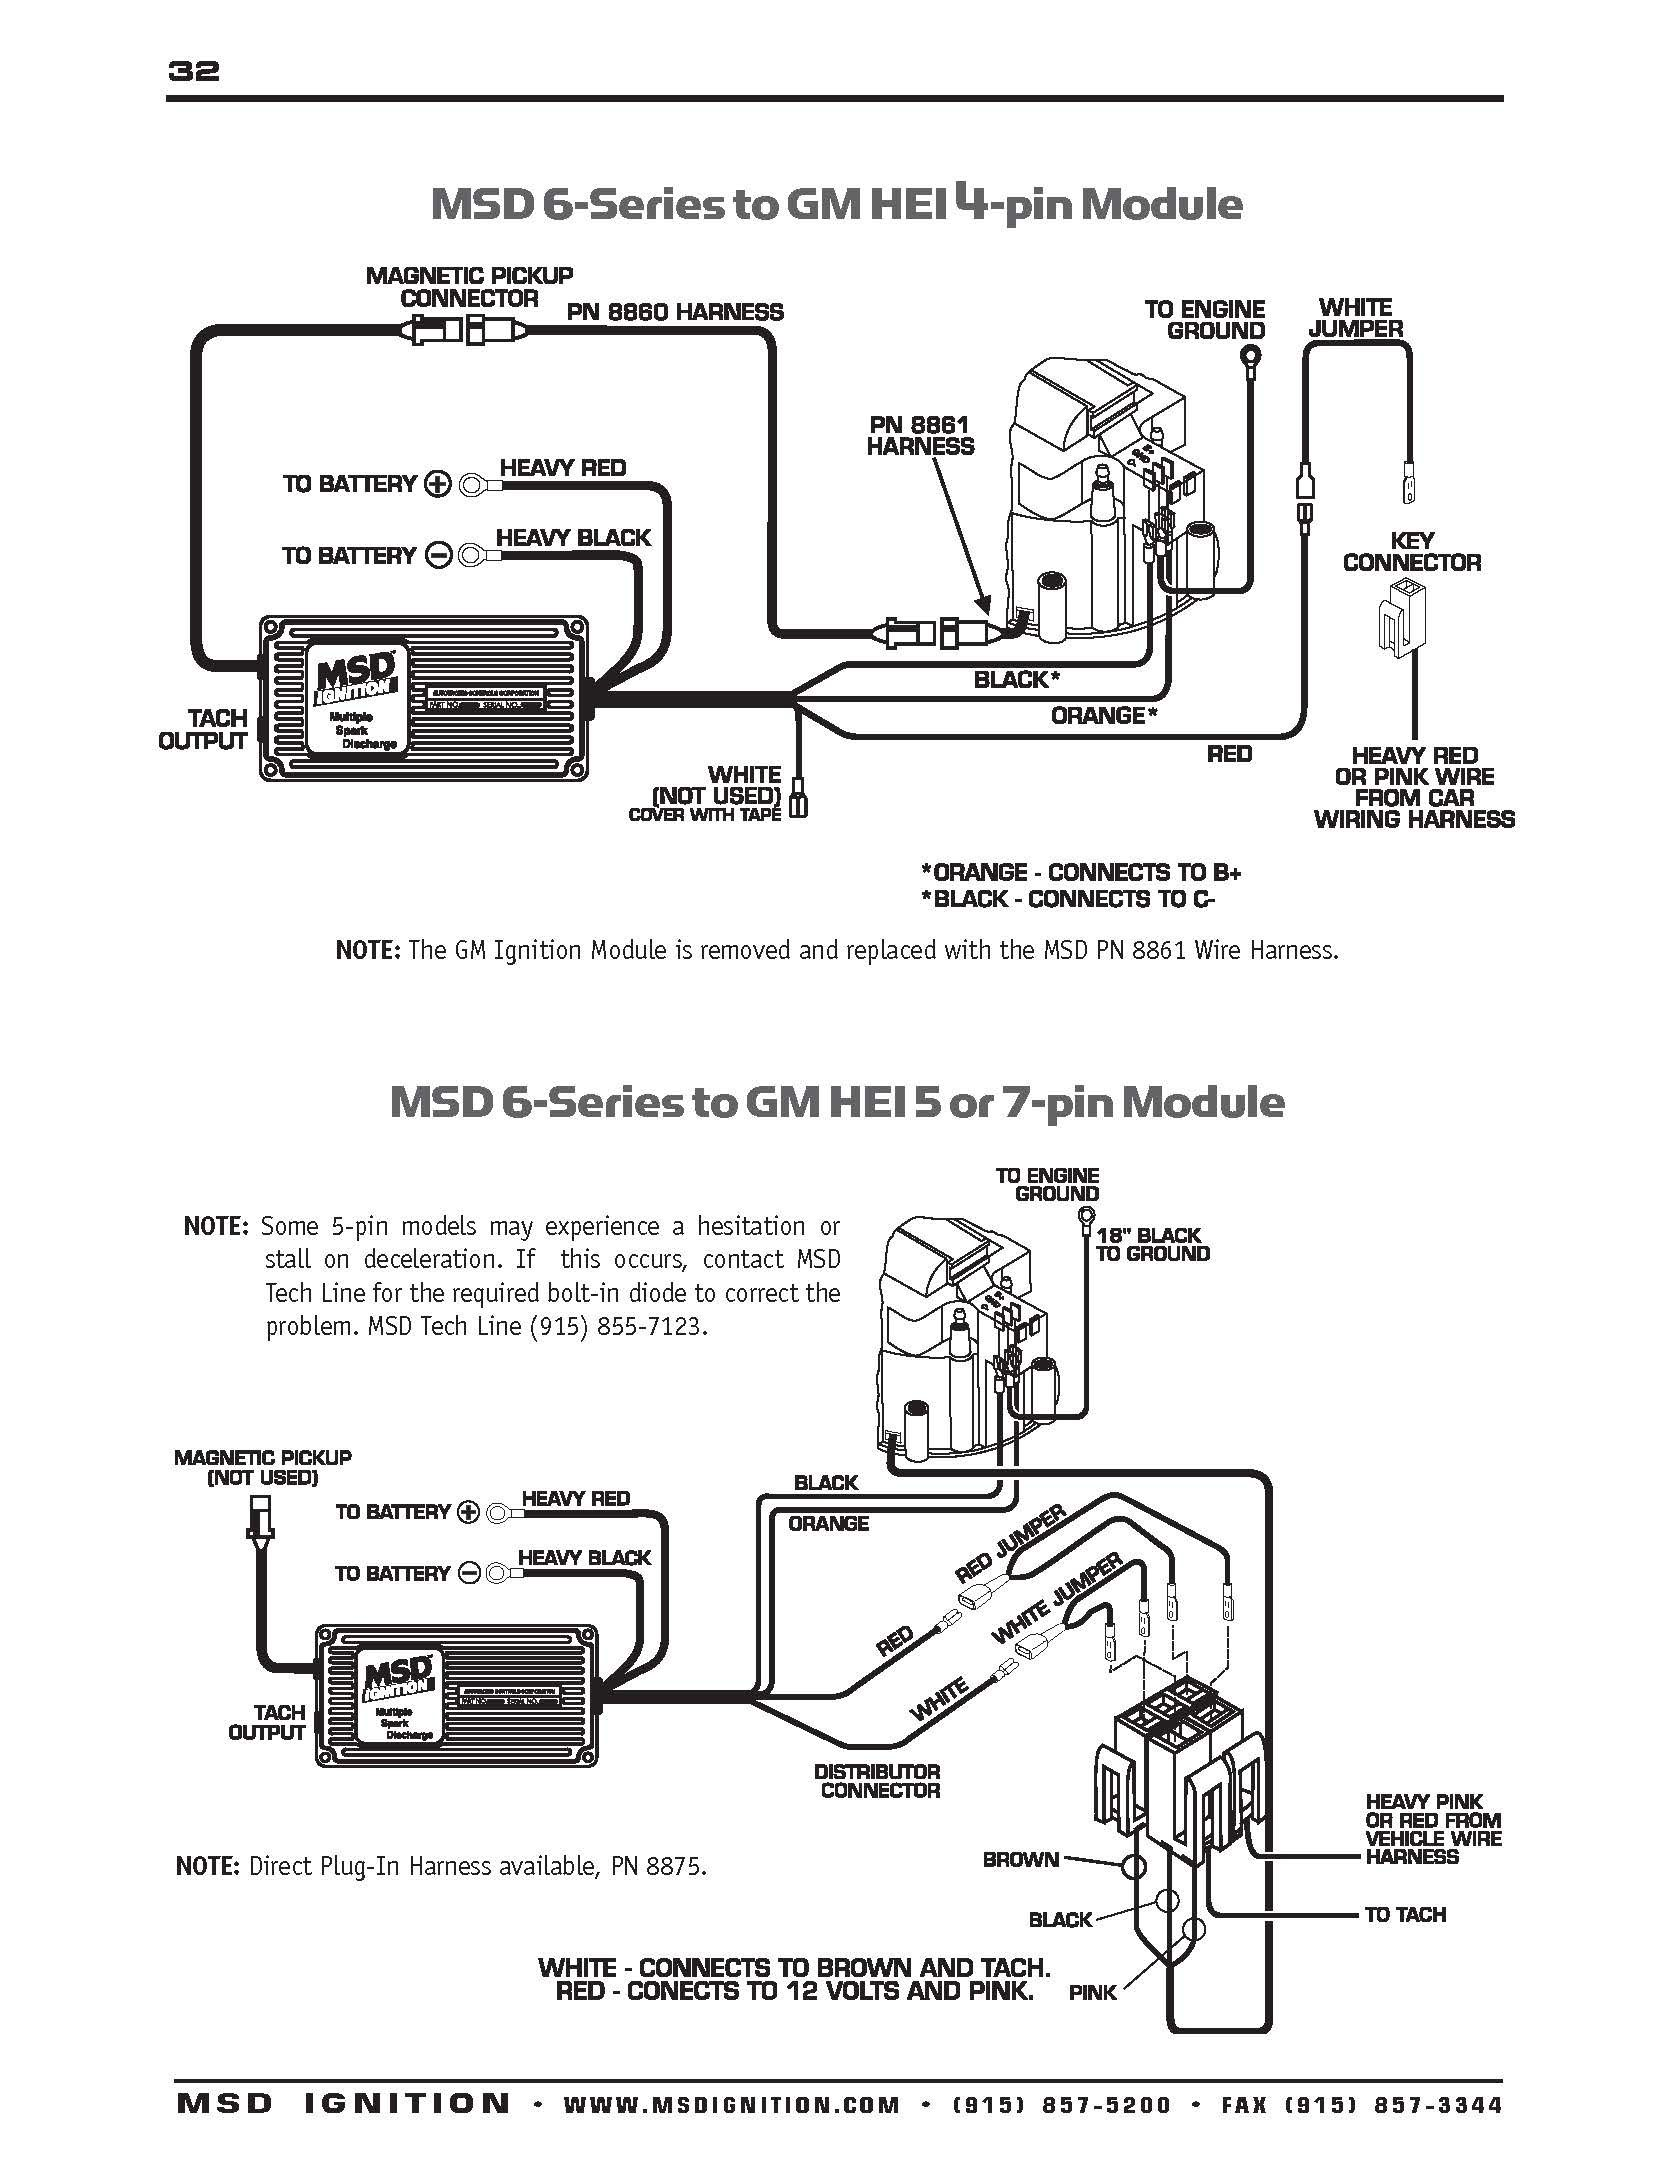 a8a9c5dd0854d22e6aad6bb5dda79a11 msd ignition wiring diagrams 1966 chevelle pinterest engine msd ignition wiring diagram at gsmx.co